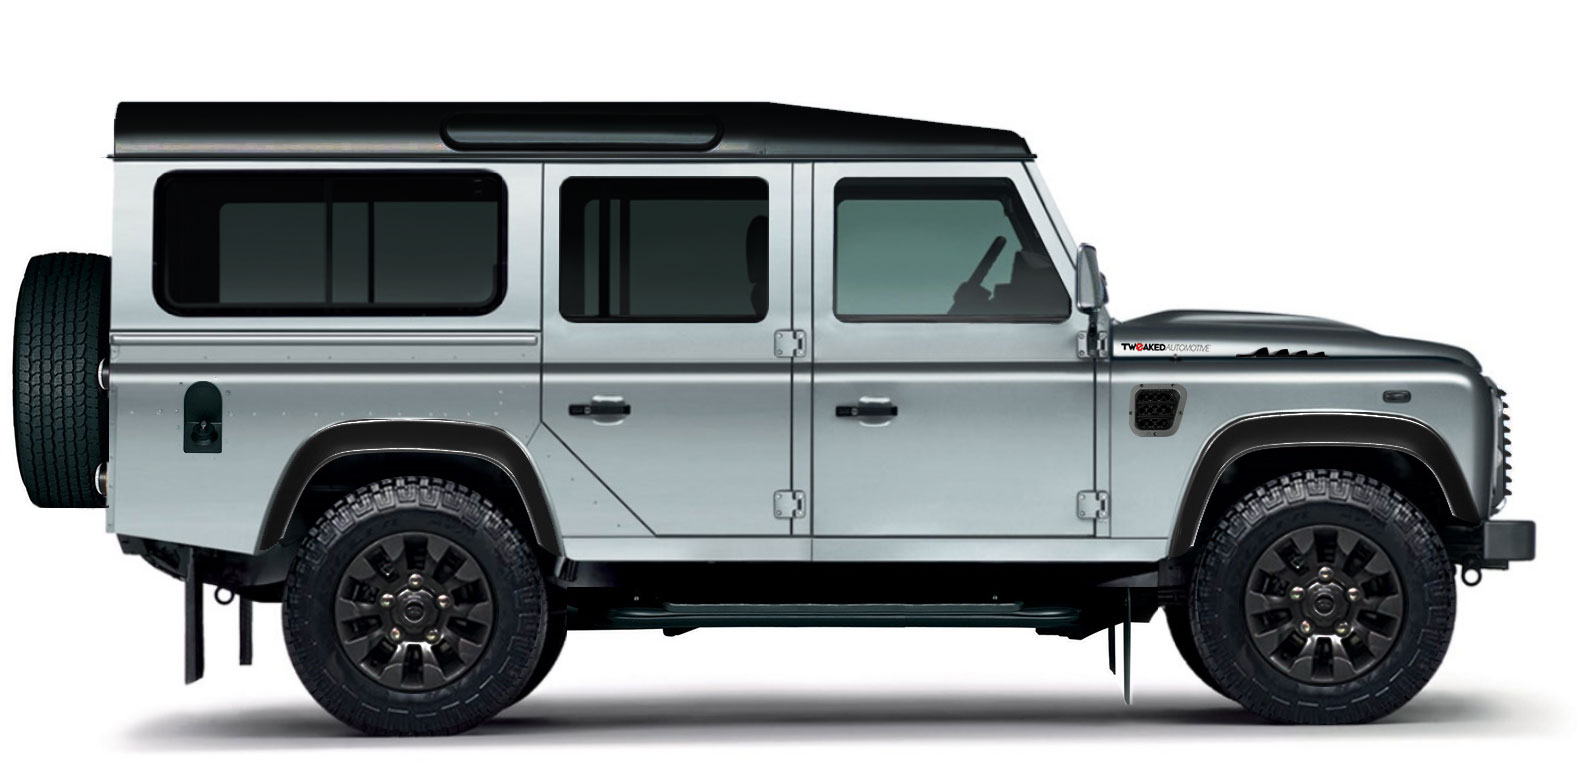 Land Rover Defender 110 XS Station Wagon - Tweaked Edition ...